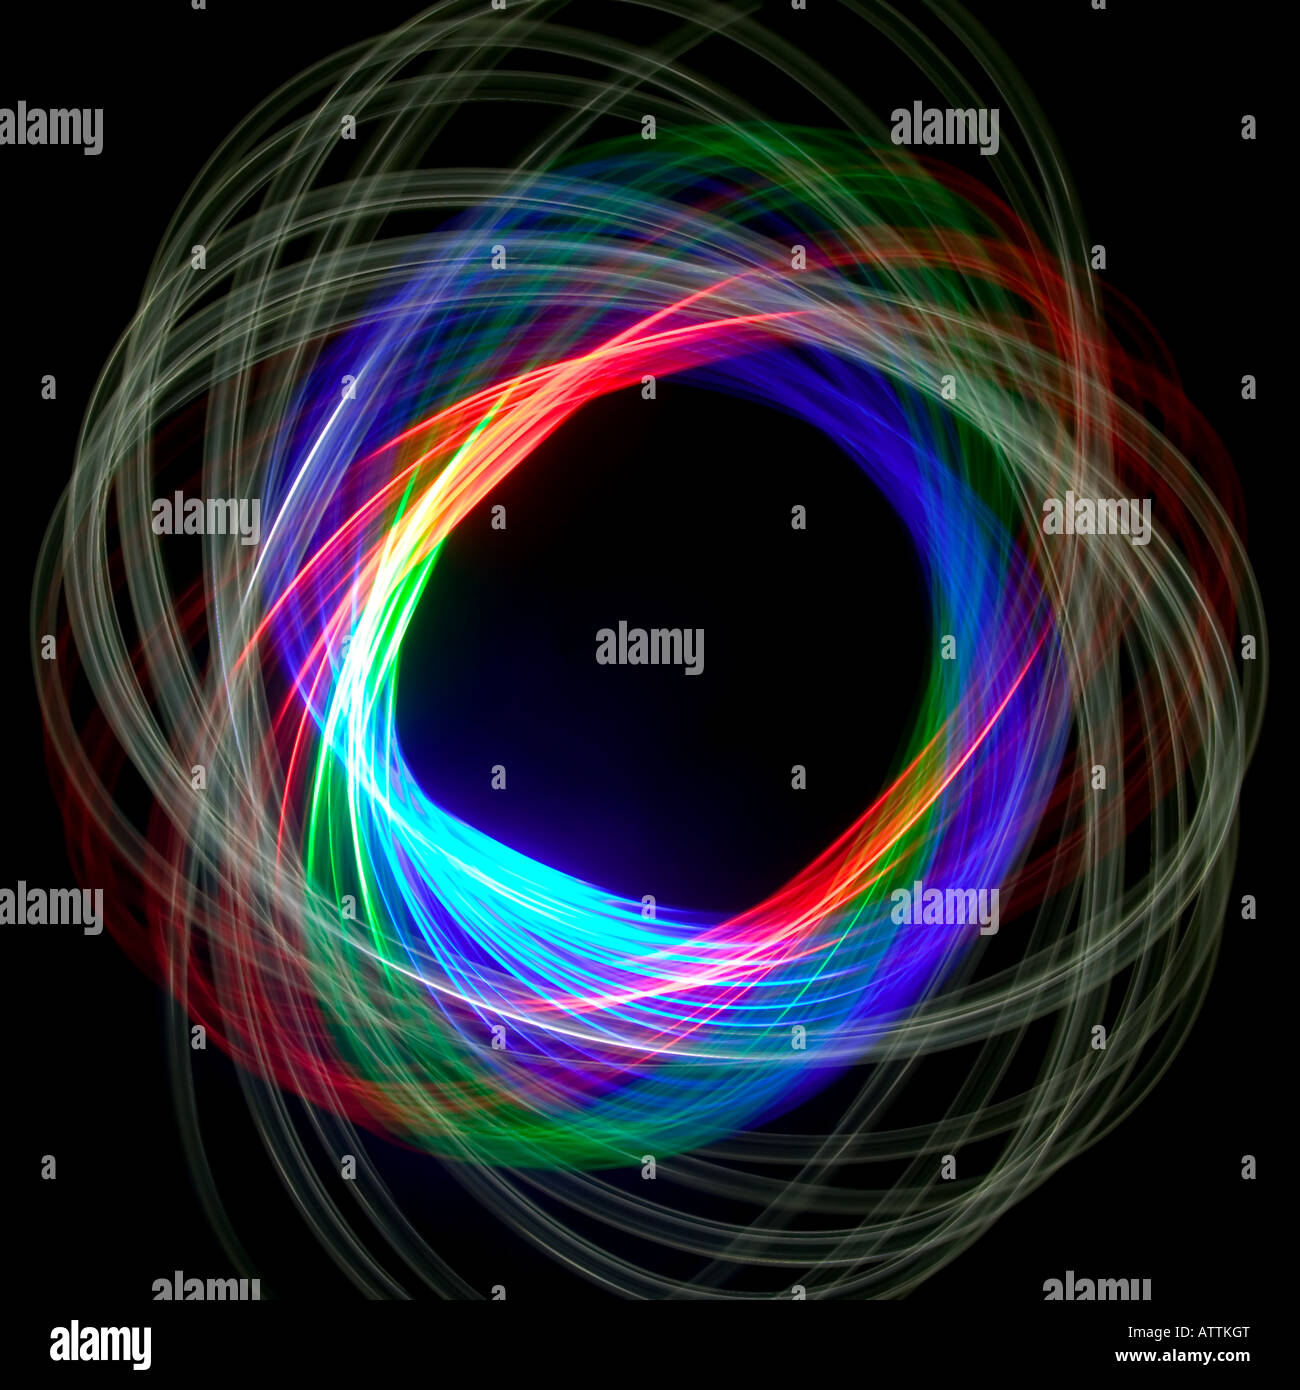 Physiogram spiral using three colour filters - Stock Image